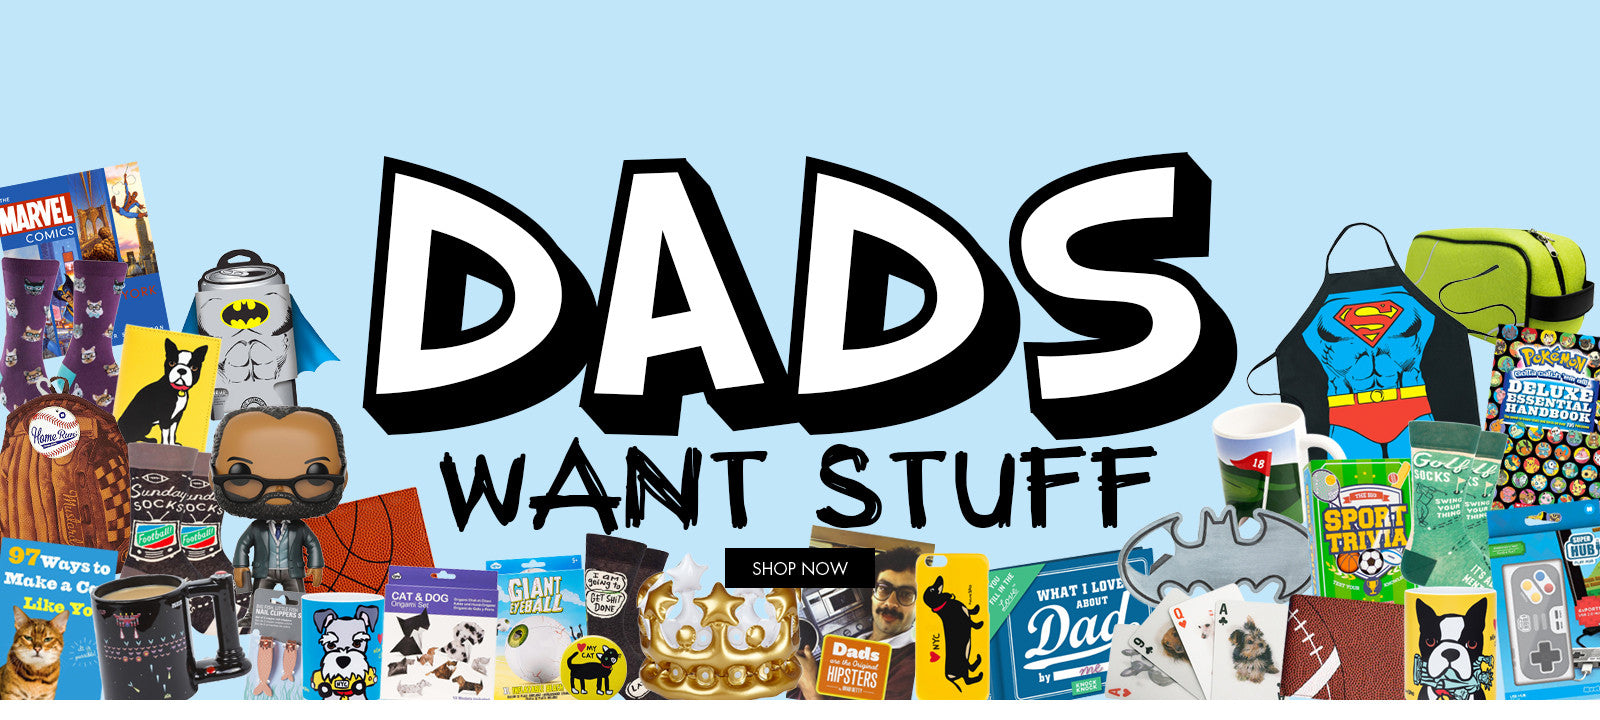 Dads Want Stuff